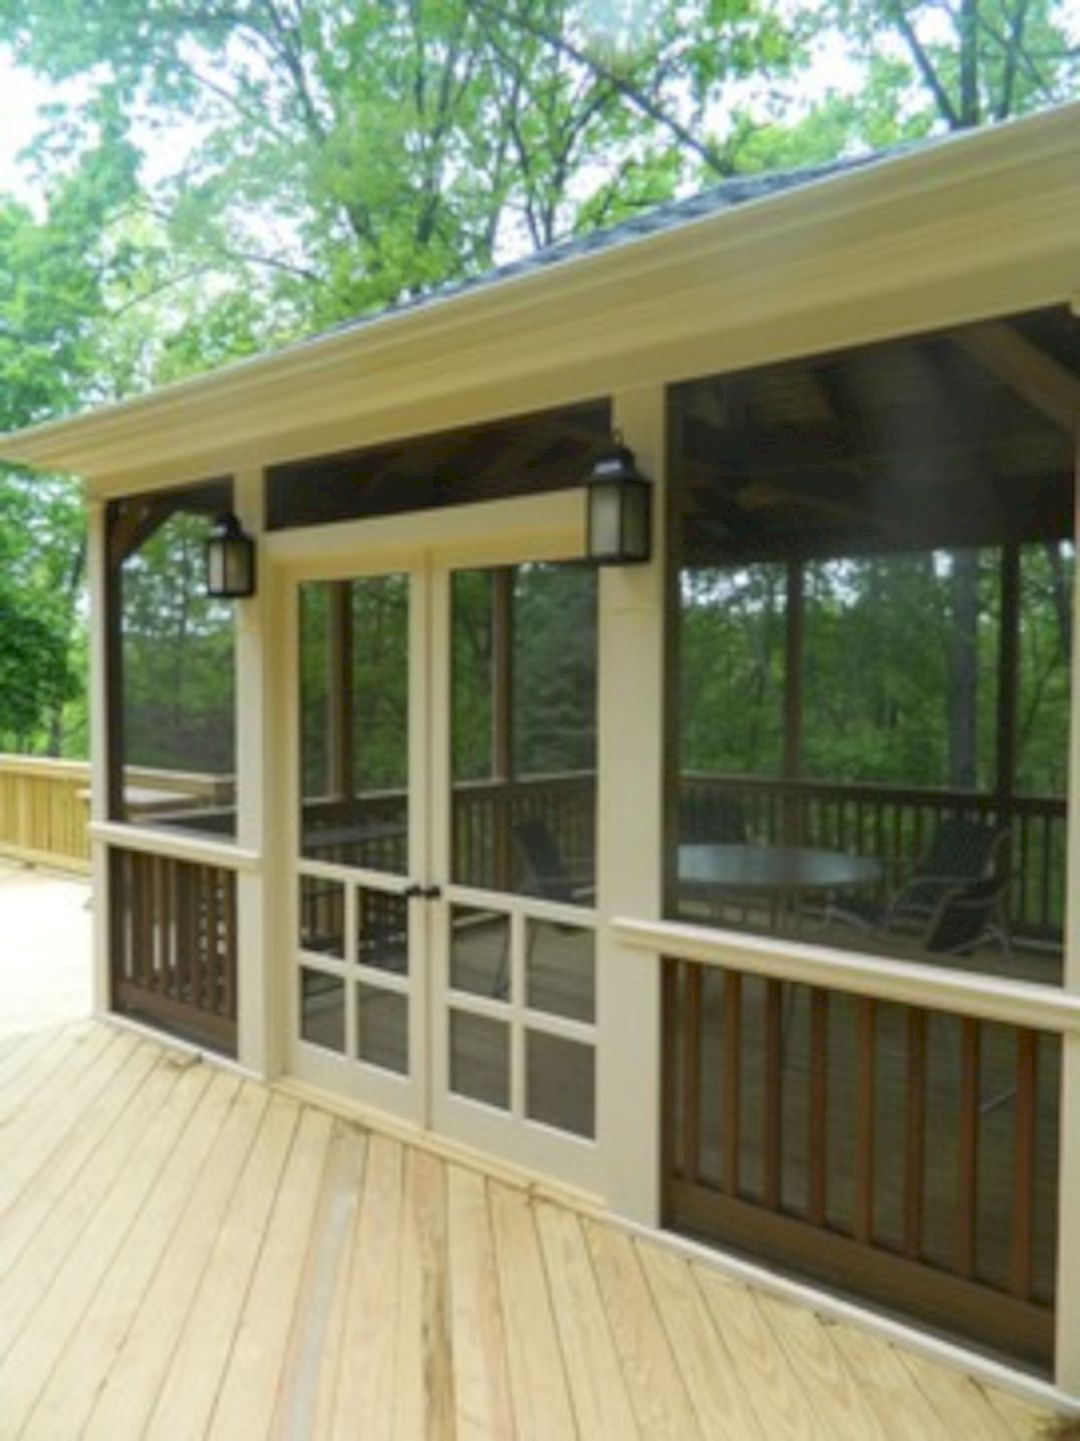 8 ways to have more appealing screened porch deck porch Screened in porch decor